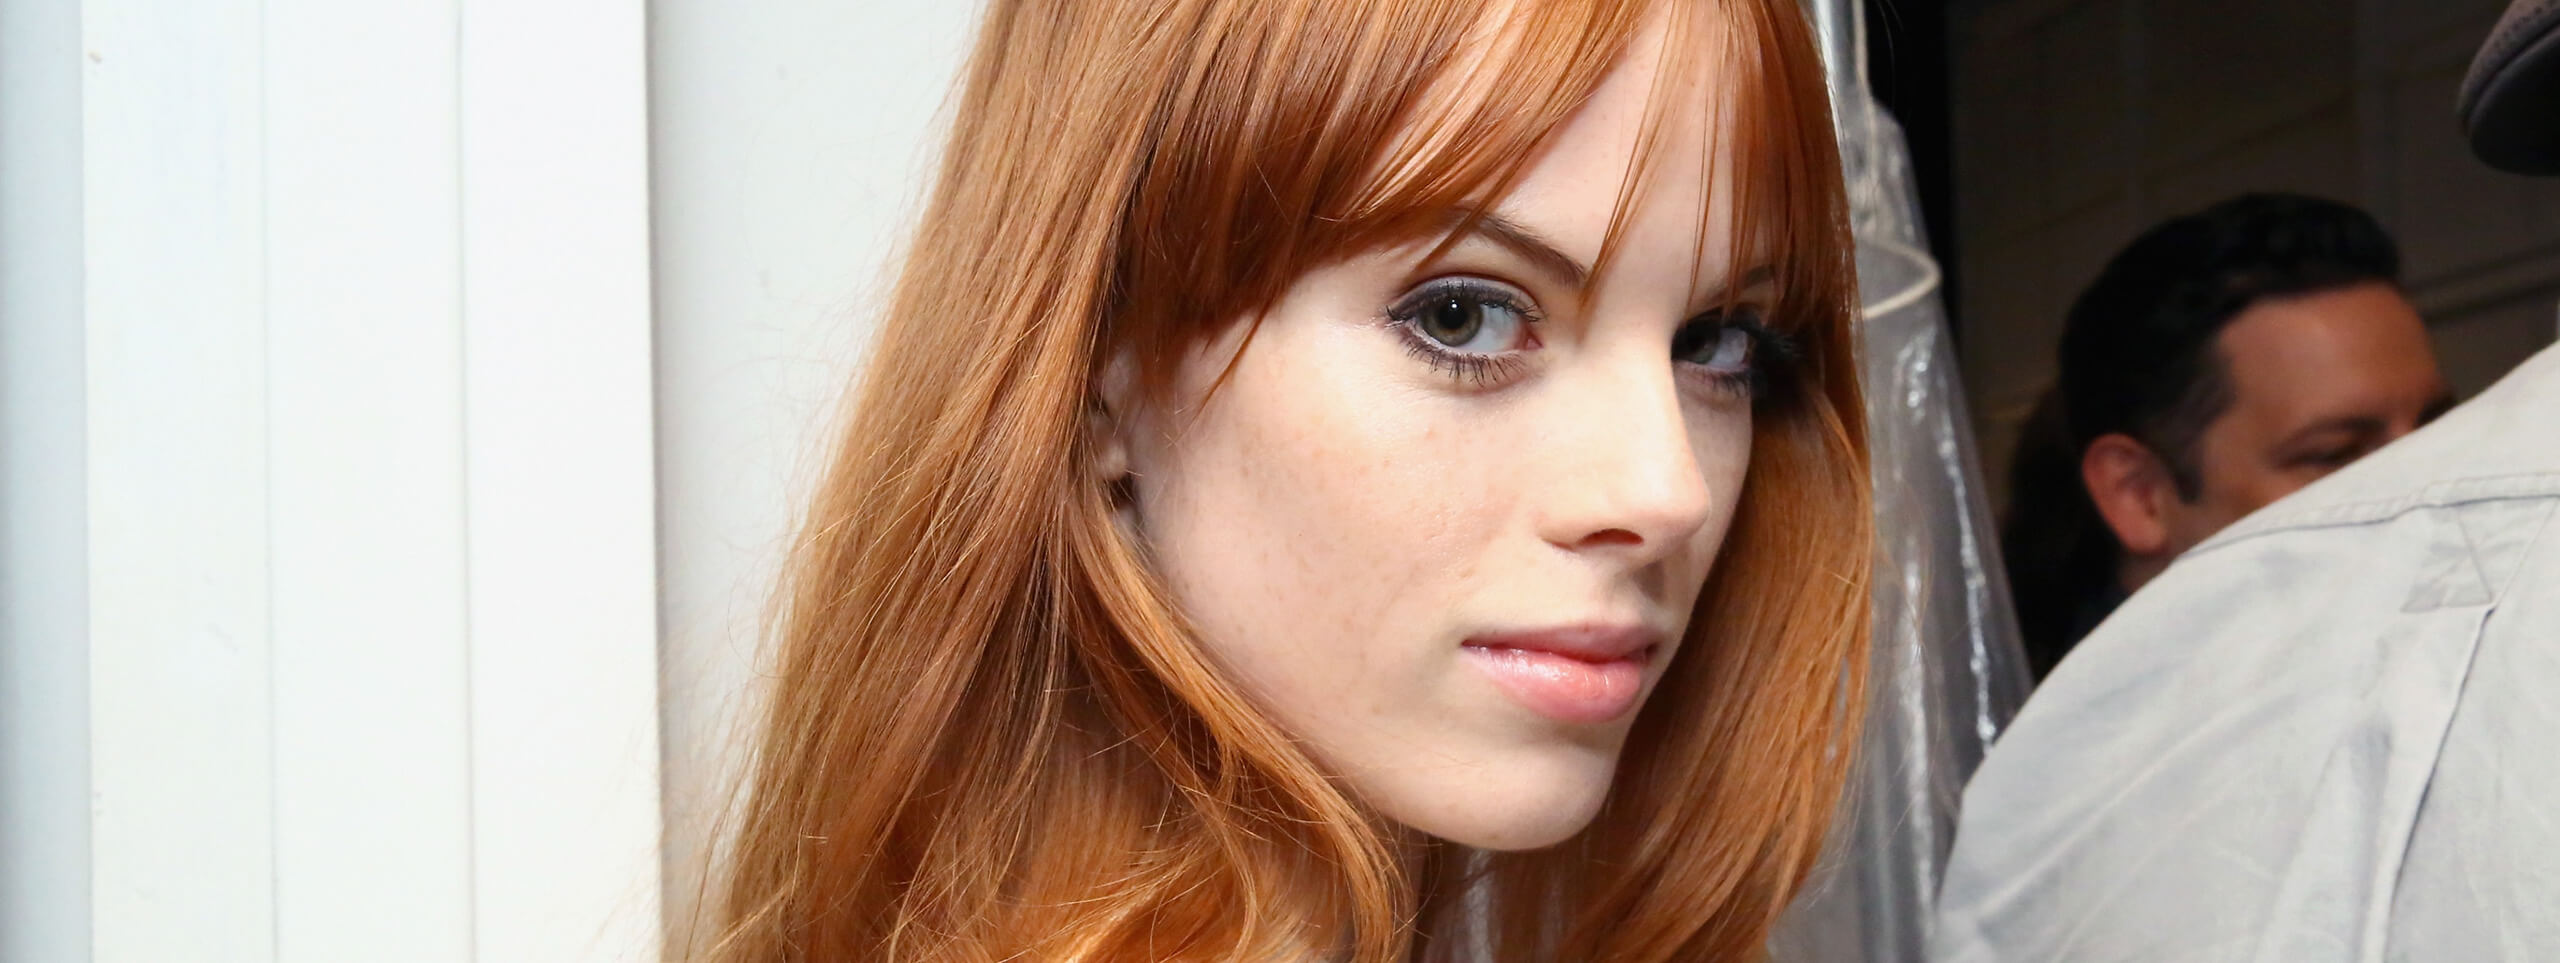 bangs-professional-tips